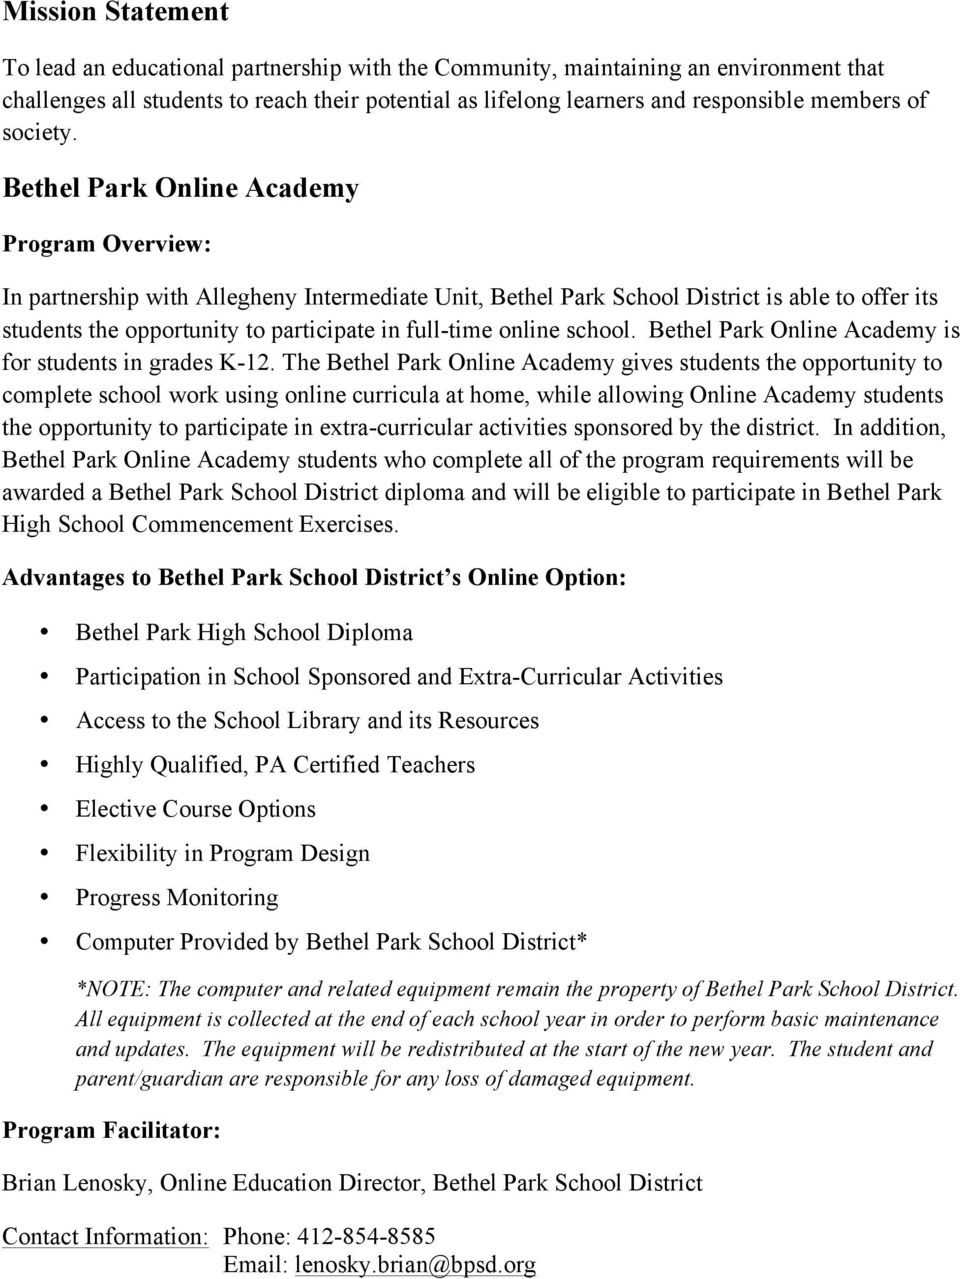 Bethel Park Online Academy Program Overview: In partnership with Allegheny Intermediate Unit, Bethel Park School District is able to offer its students the opportunity to participate in full-time